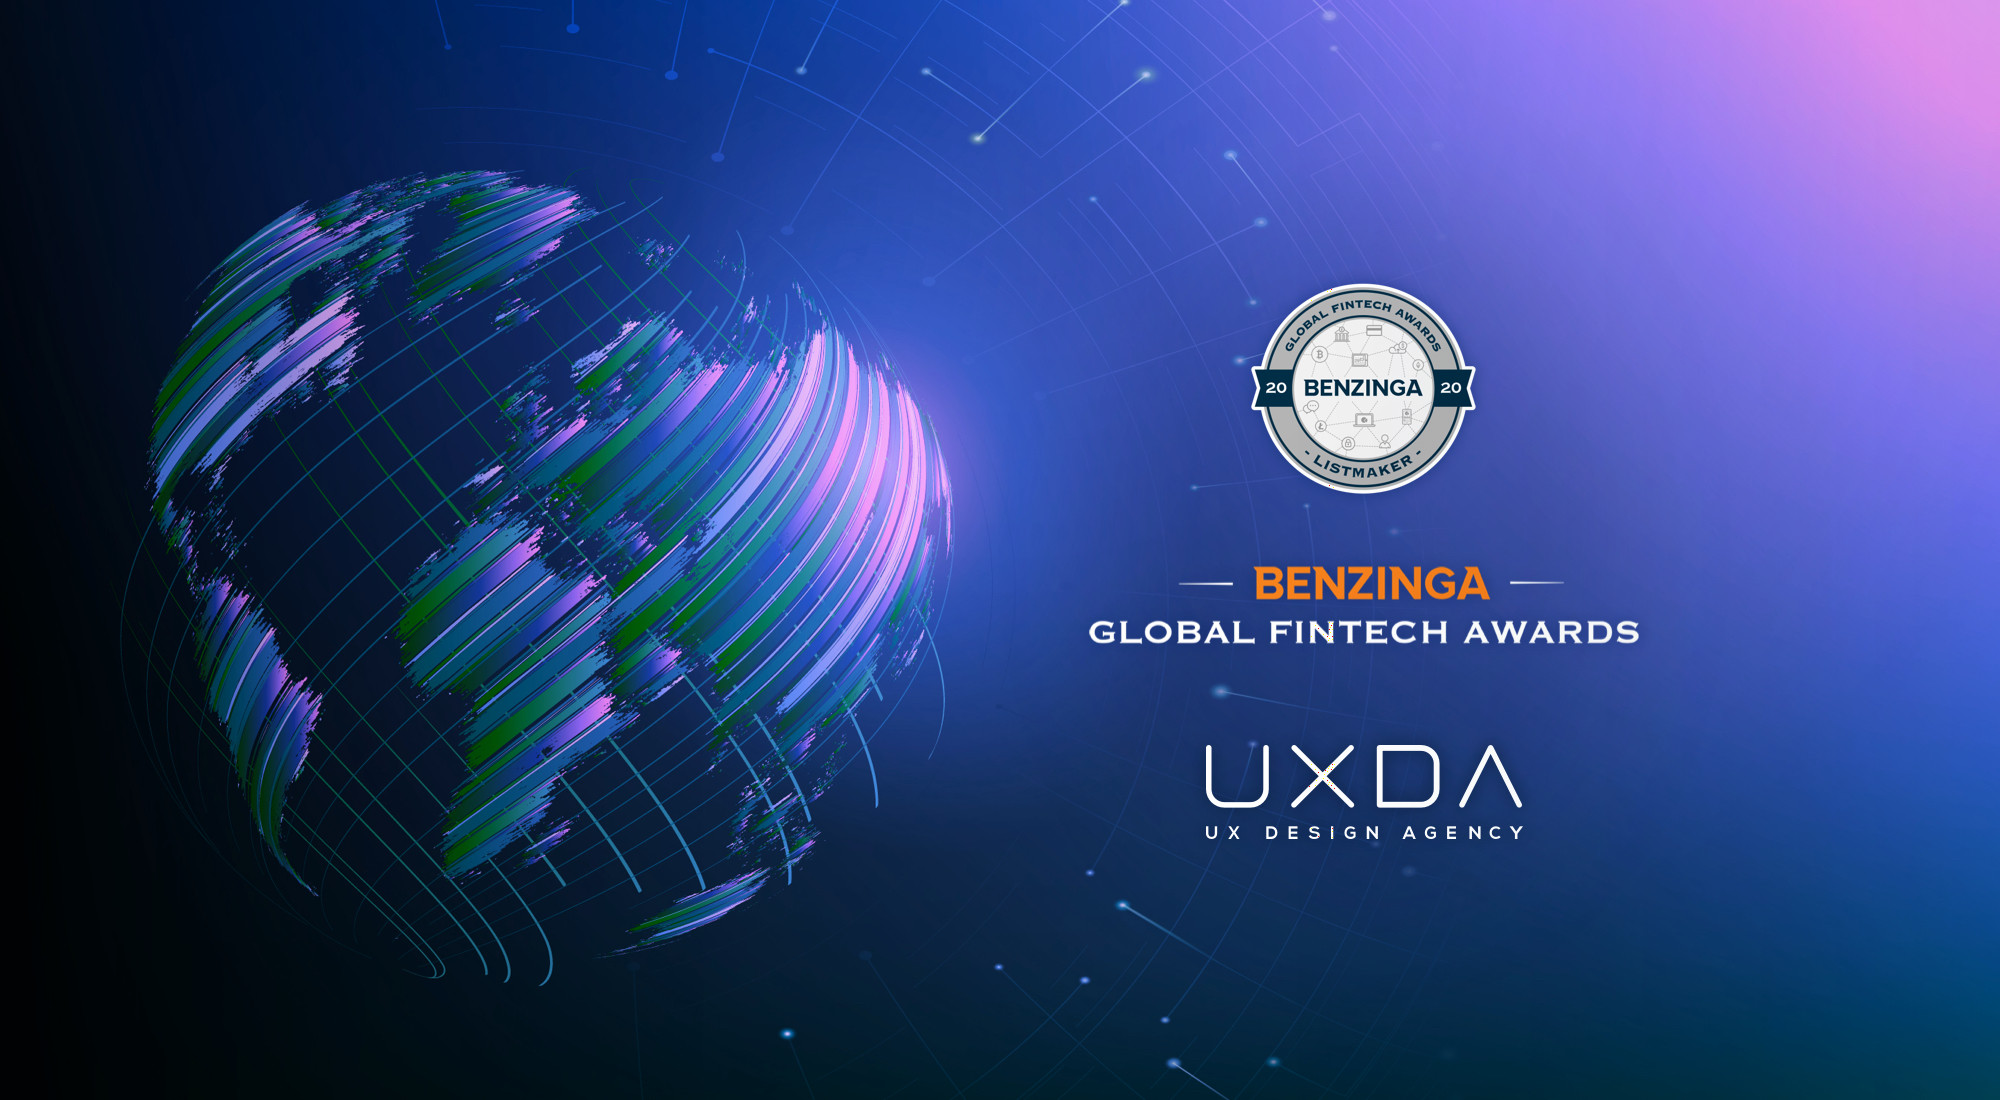 UXDA Becomes Benzinga Global Fintech Awards Listmaker as the Best Financial Research Company